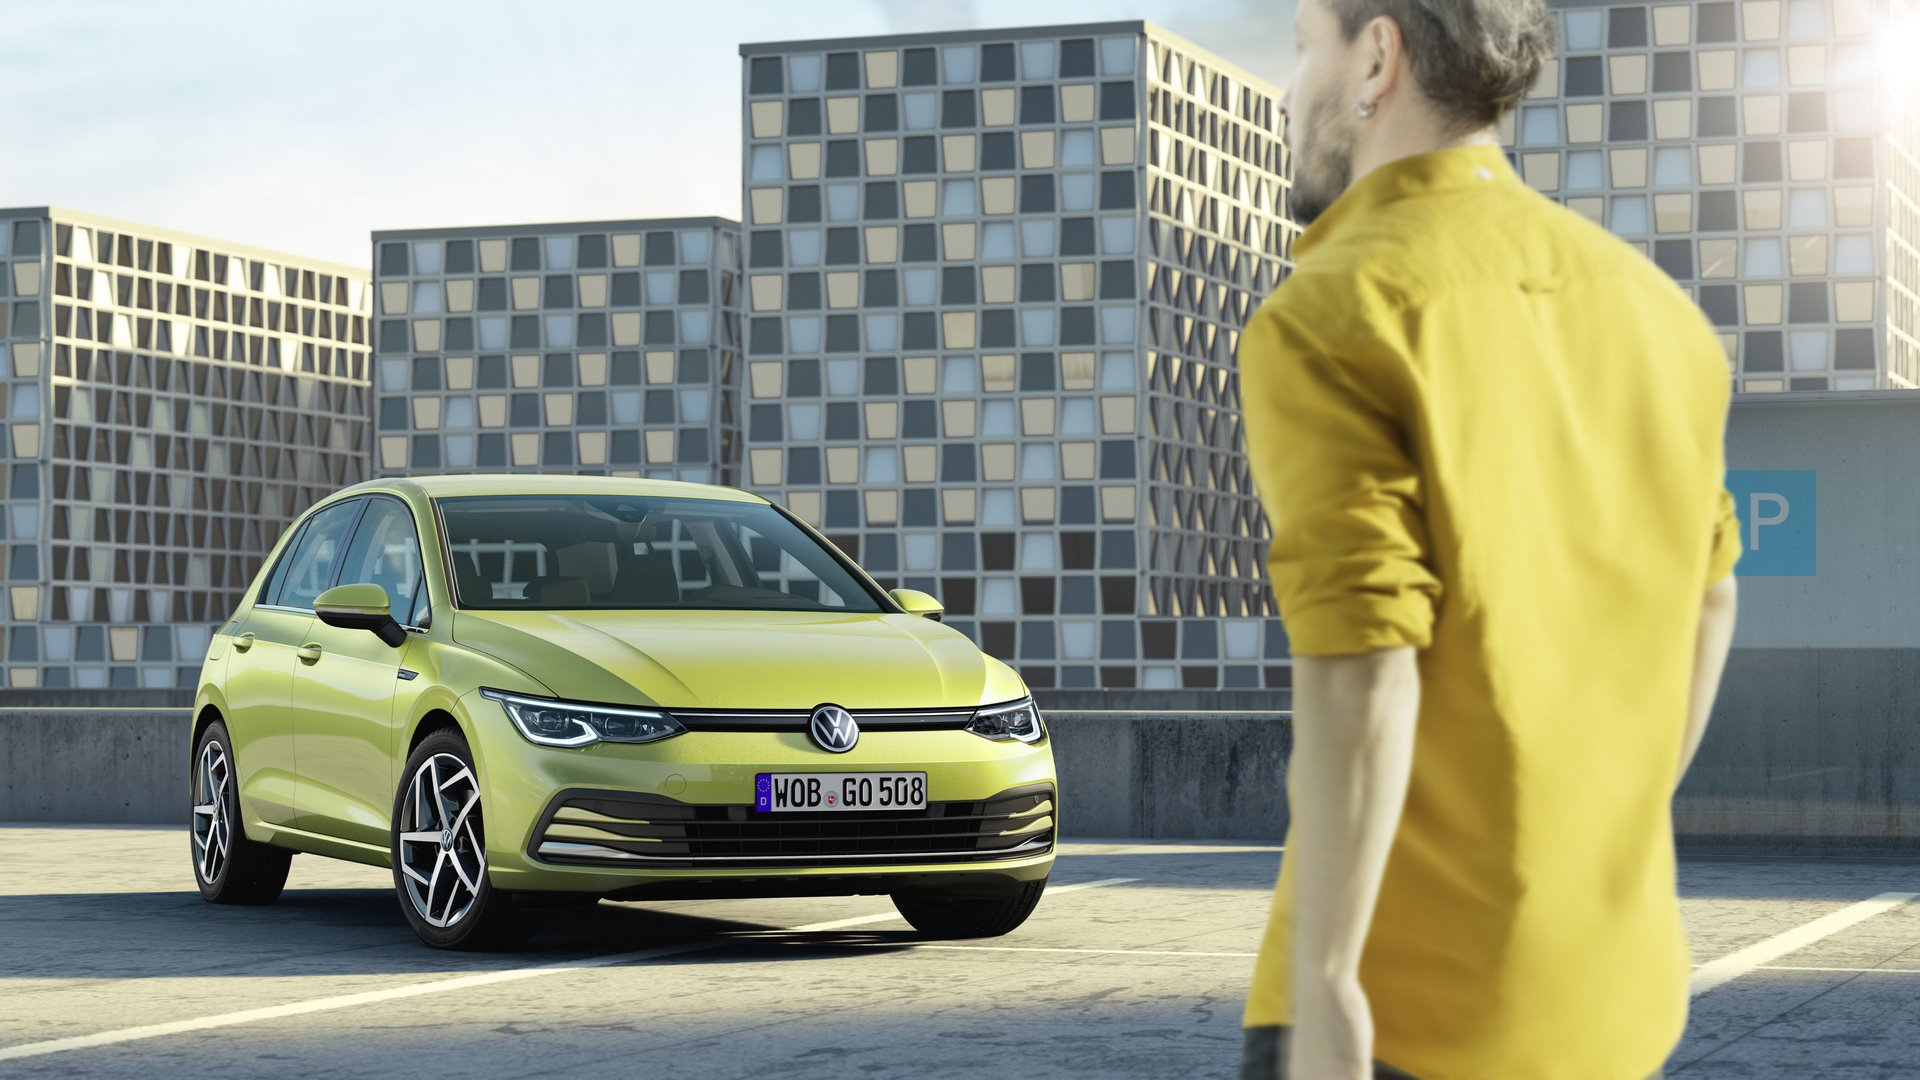 The new Volkswagen Golf